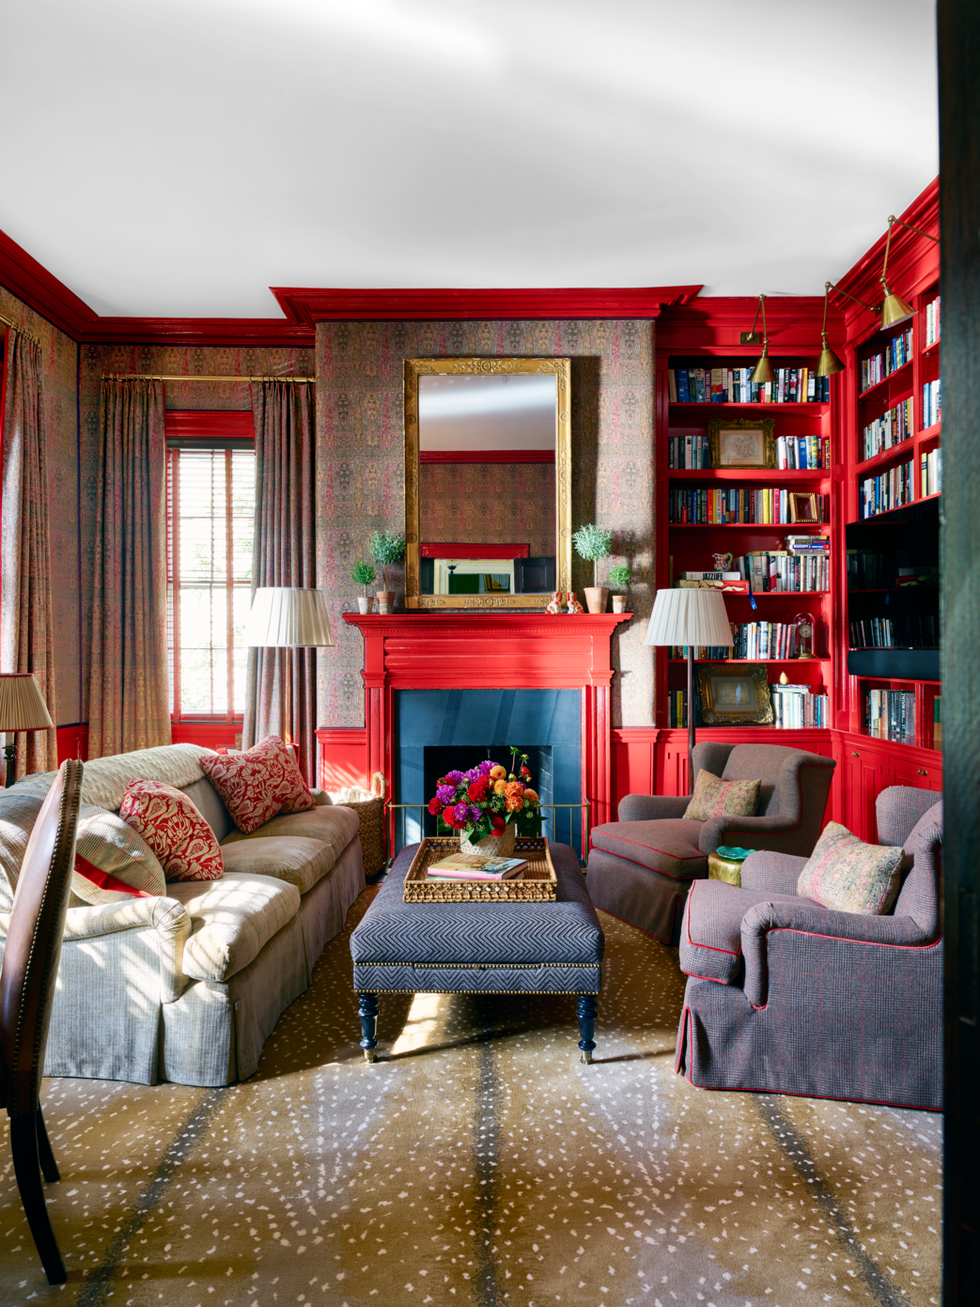 Luxury Home Library Design: 15 Stylish Home Libraries You'll Want To Cozy Into (With